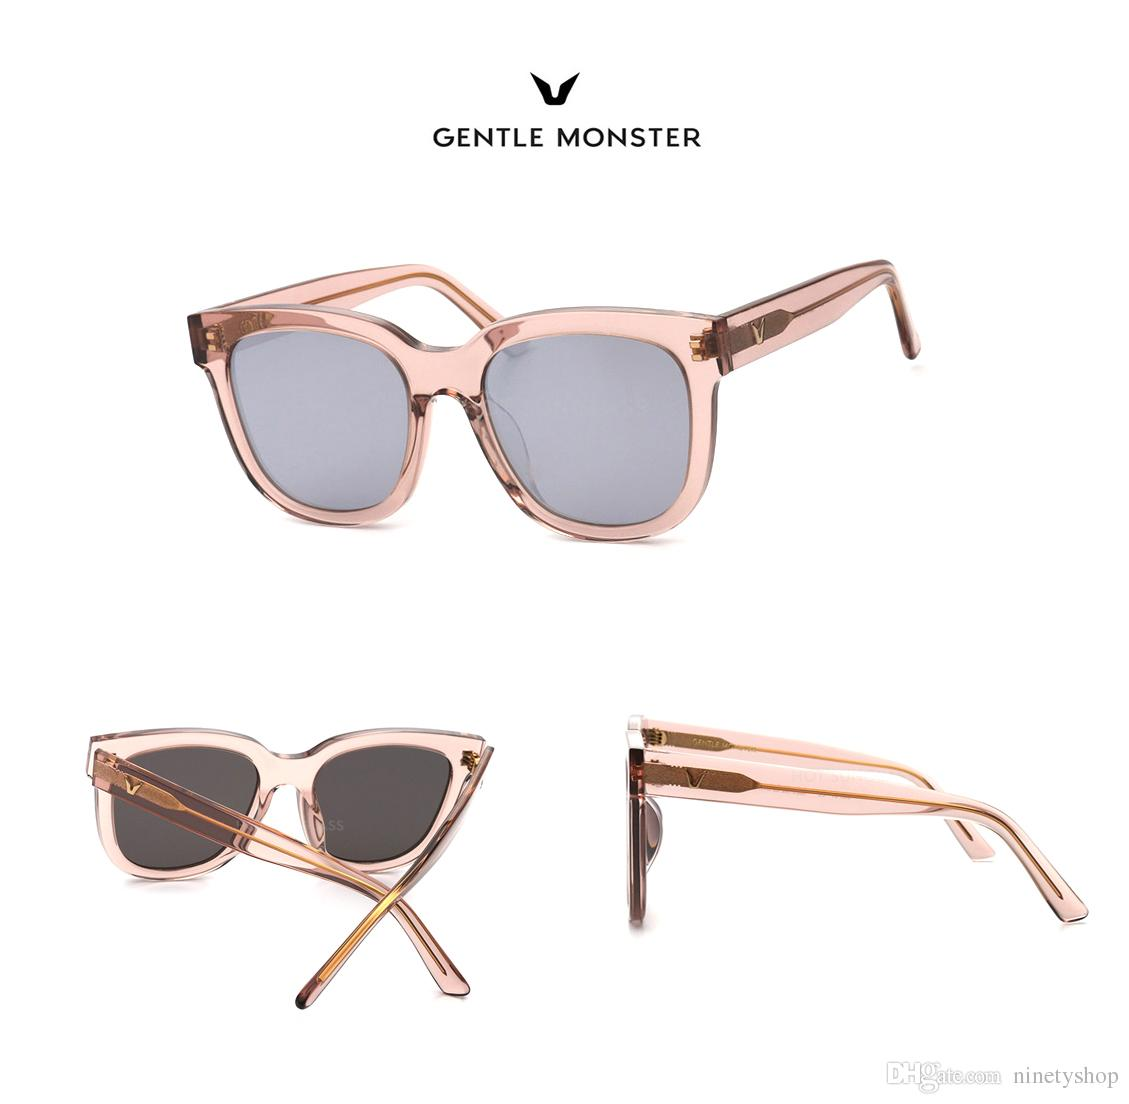 a3b5d9a82339 2019 Hot GENTELE MONSTER Fashion Sunglasses V GM SALT Sunglasses SALT  Series Sunglasses SALT S11M From Ninetyshop